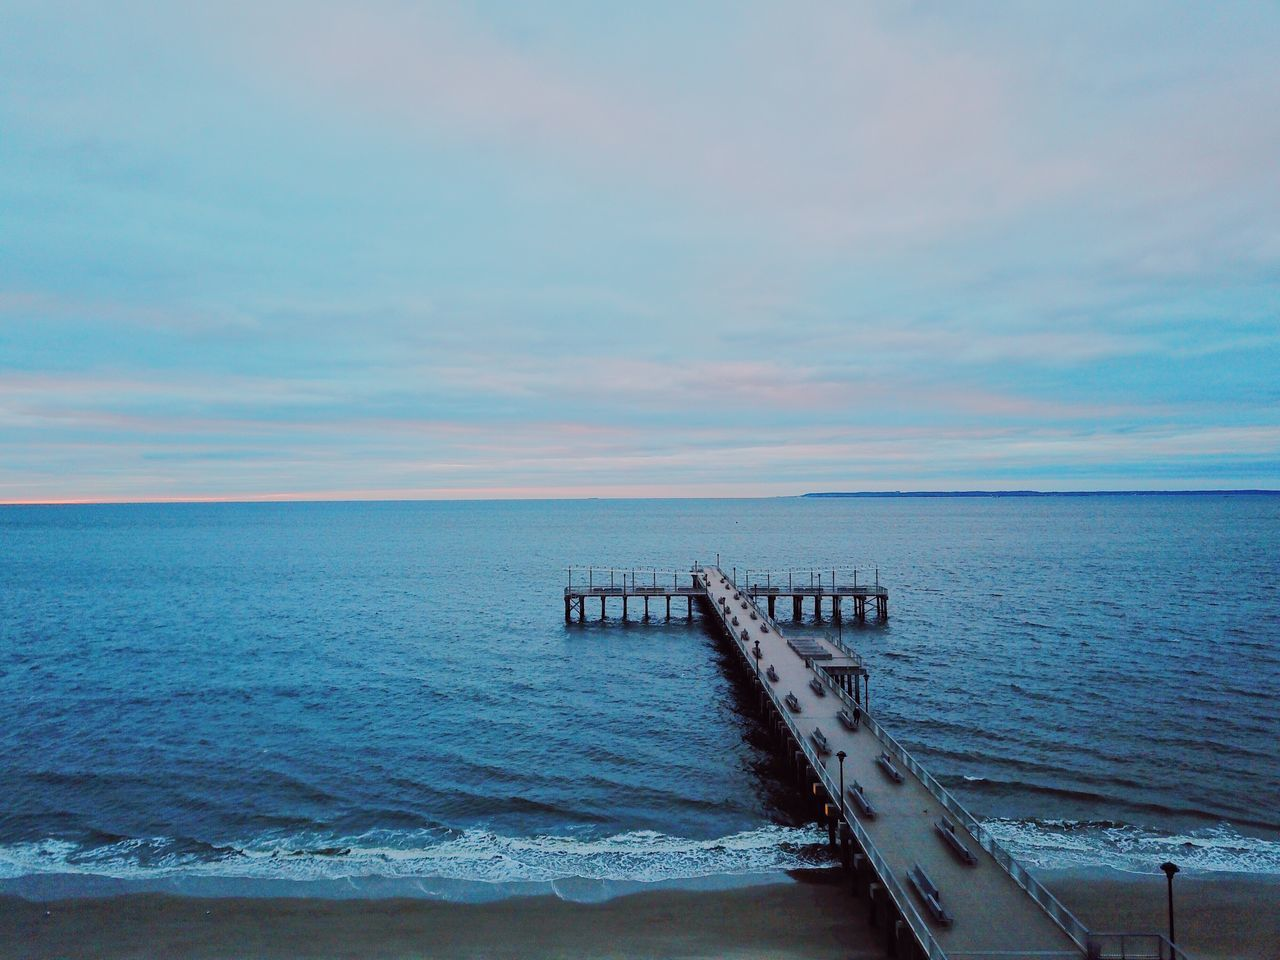 sea, sky, water, horizon, horizon over water, scenics - nature, beauty in nature, cloud - sky, tranquil scene, tranquility, nature, beach, no people, idyllic, land, motion, pier, day, outdoors, wooden post, groyne